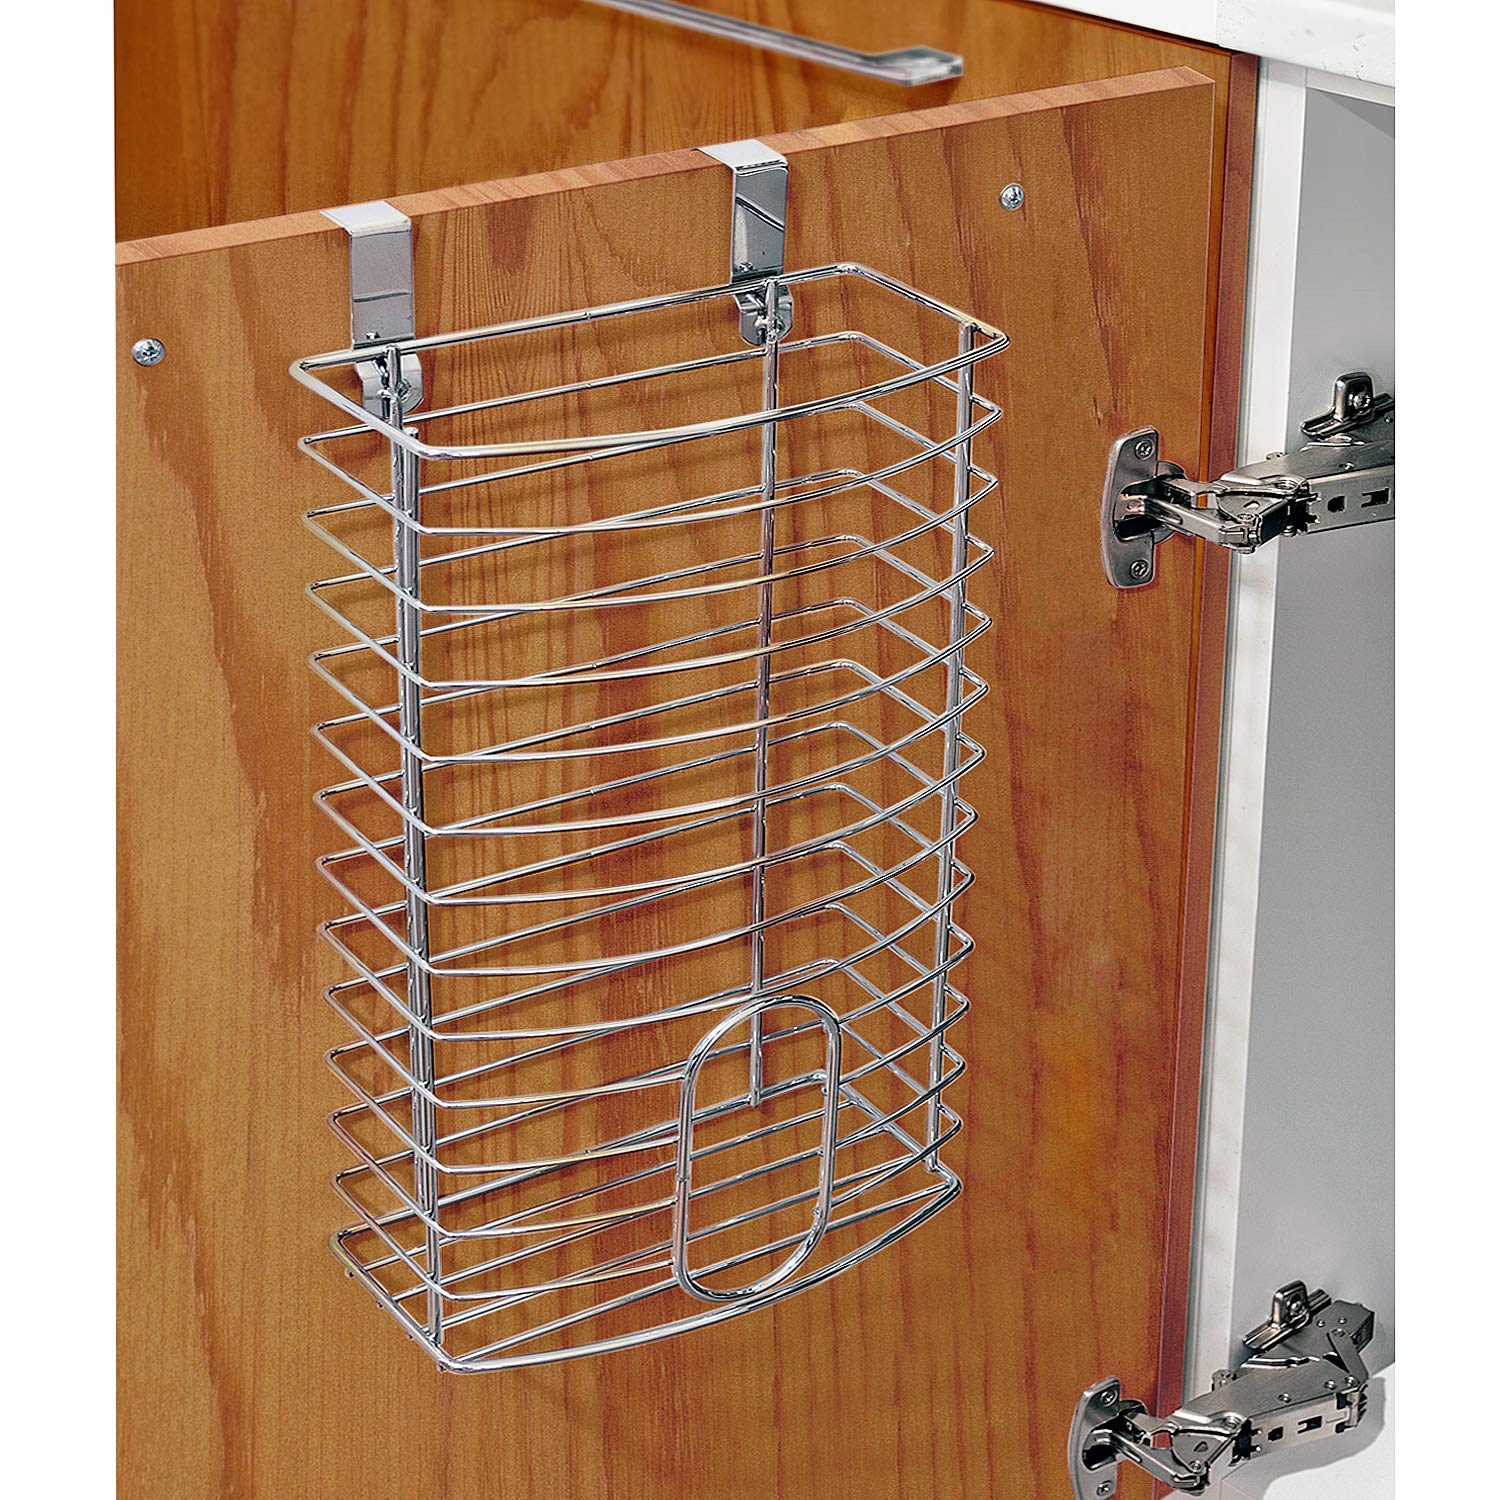 Easy to Place on Shelves Made of Chromed Steel. or Cabinets Tatkraft Fun Over The Door Grocery Bag Holder Versatile and Easy to Use Walls